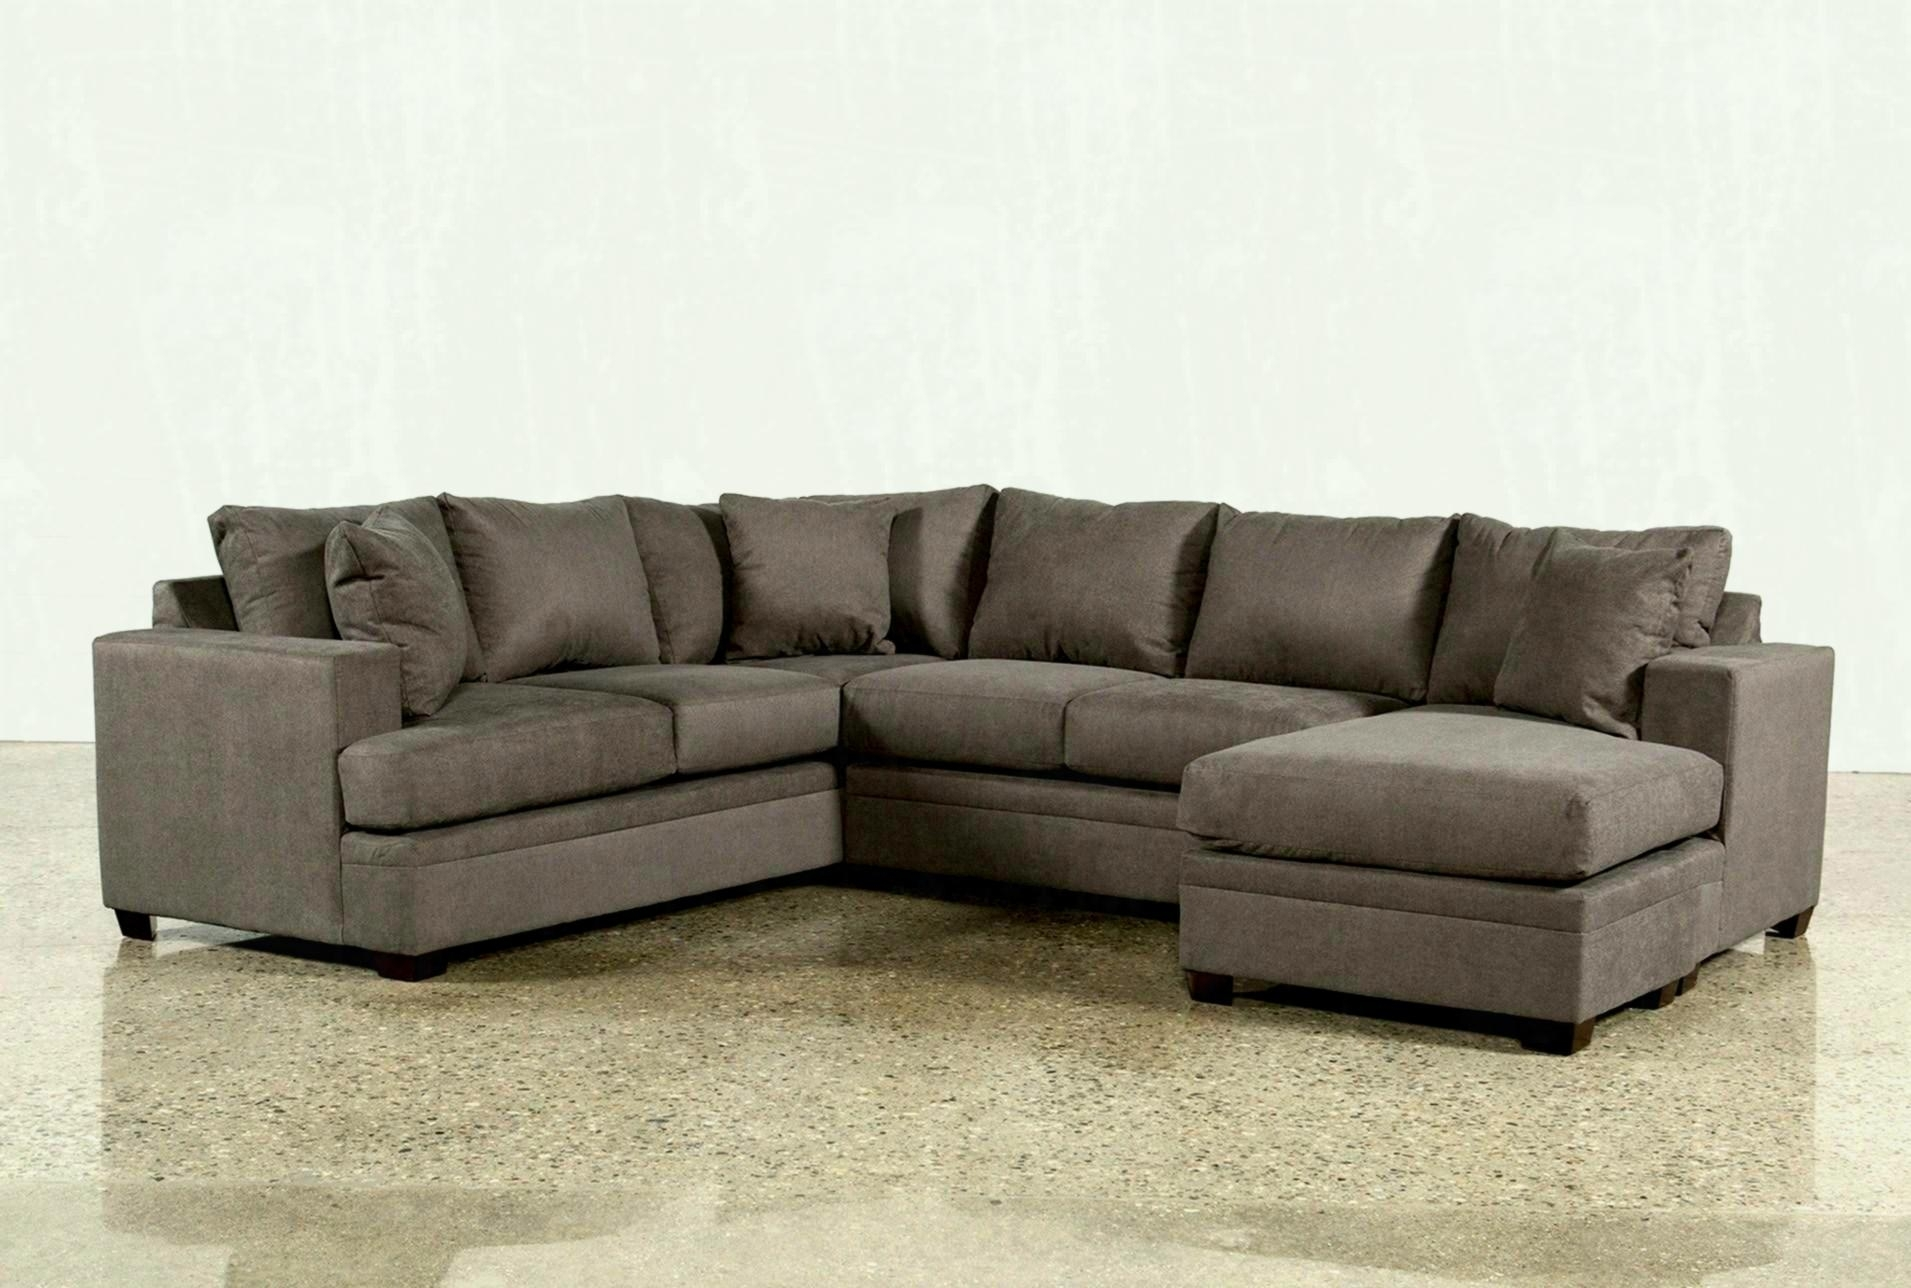 Added To Cart Kerri Piece Sectional W Raf Chaise Living Spaces Regarding Lucy Grey 2 Piece Sectionals With Raf Chaise (Image 3 of 25)